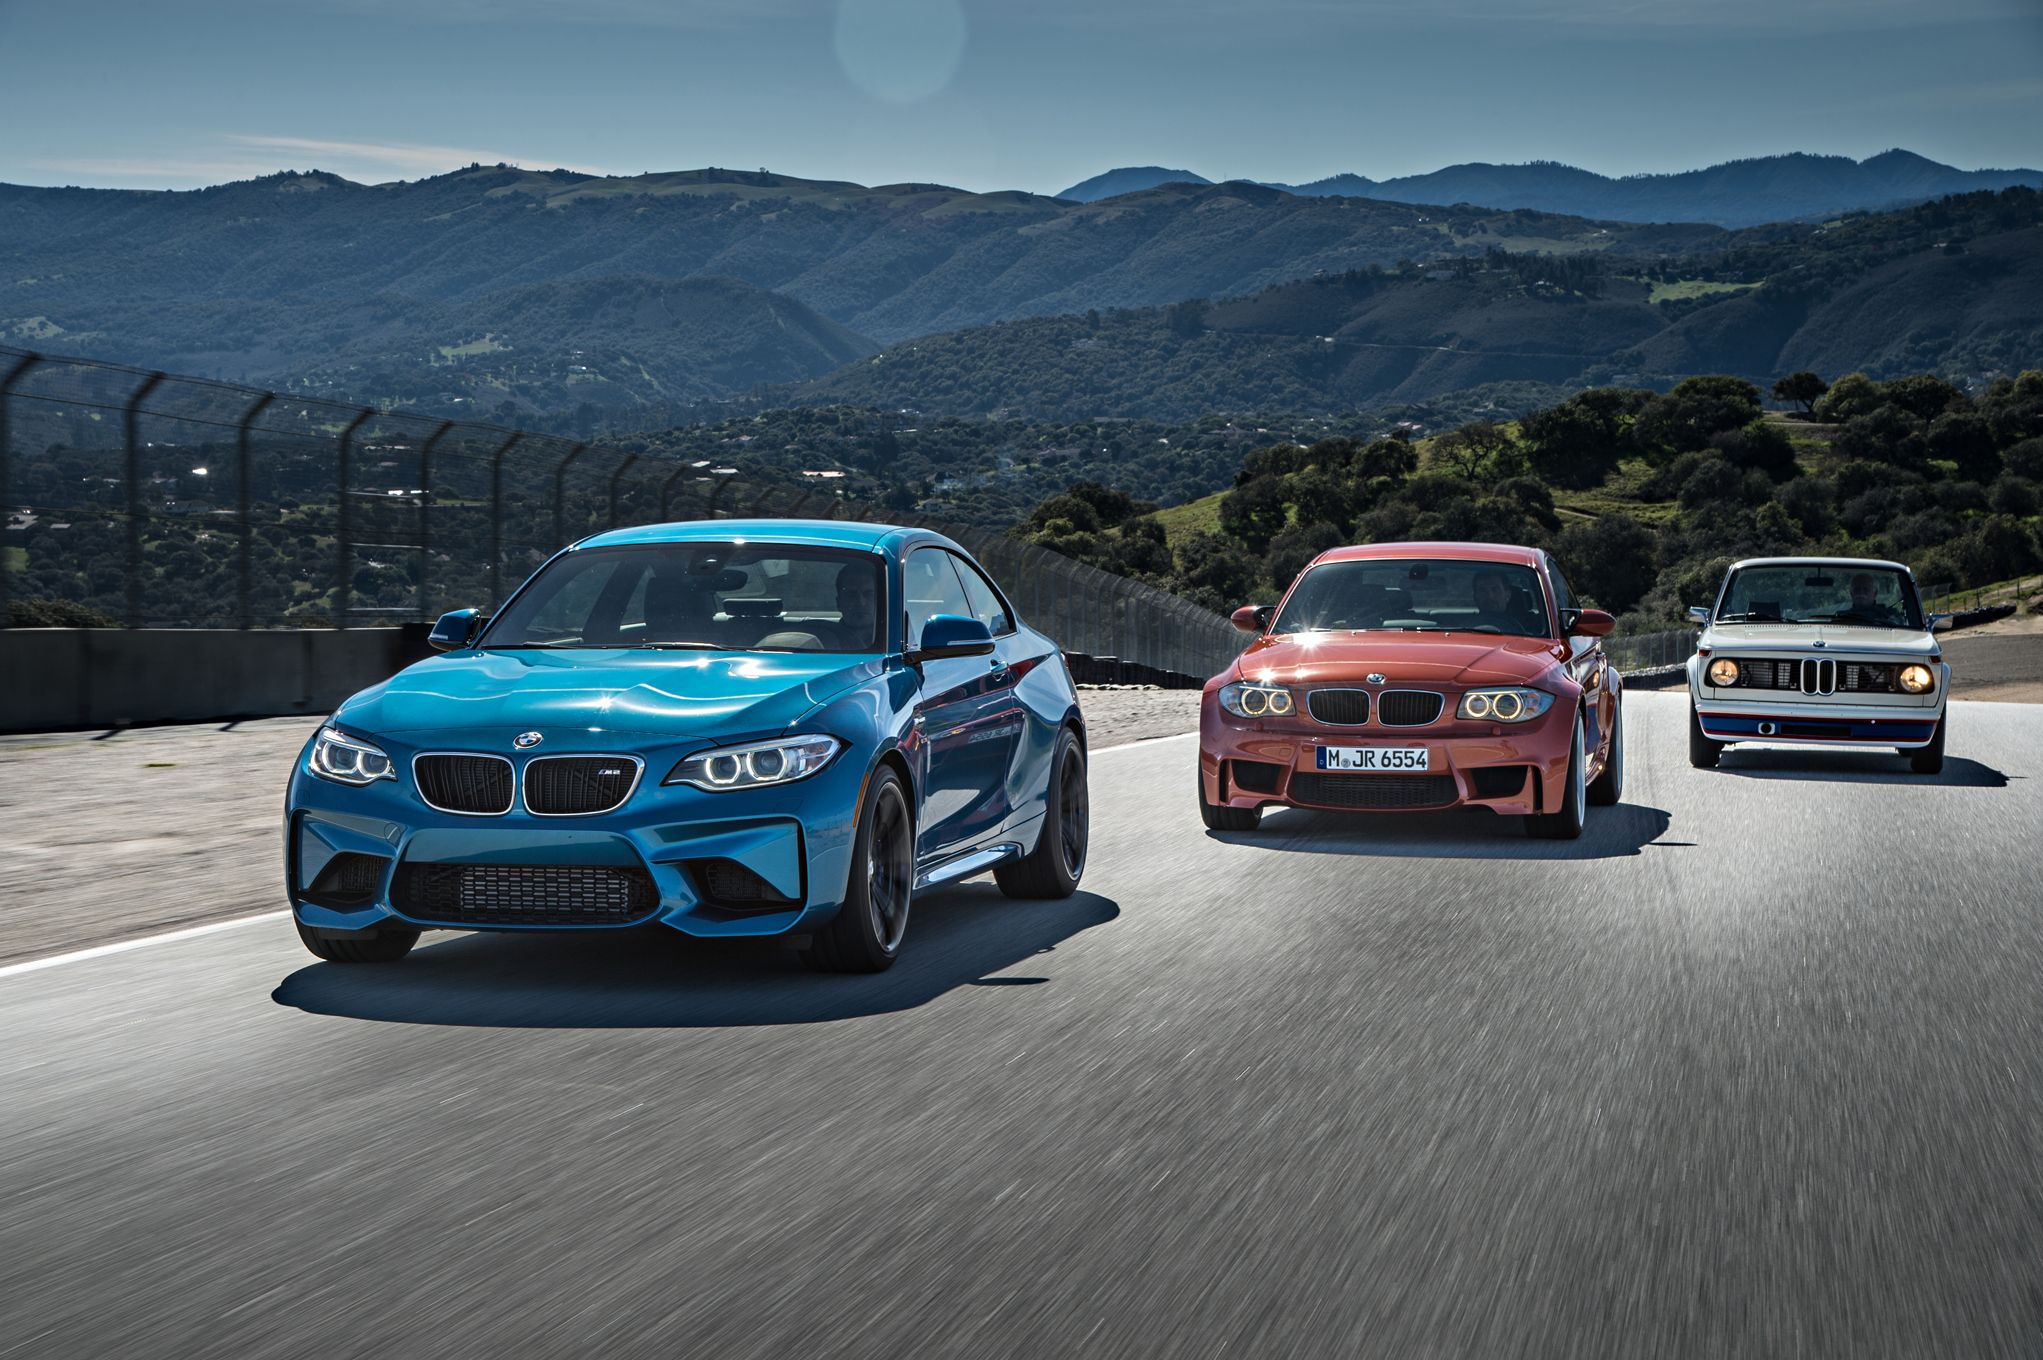 2016-bmw-m2-bmw-2002-turbo-and-bmw-1-series-m-coupe-front-three-quarter-in-motion.jpg